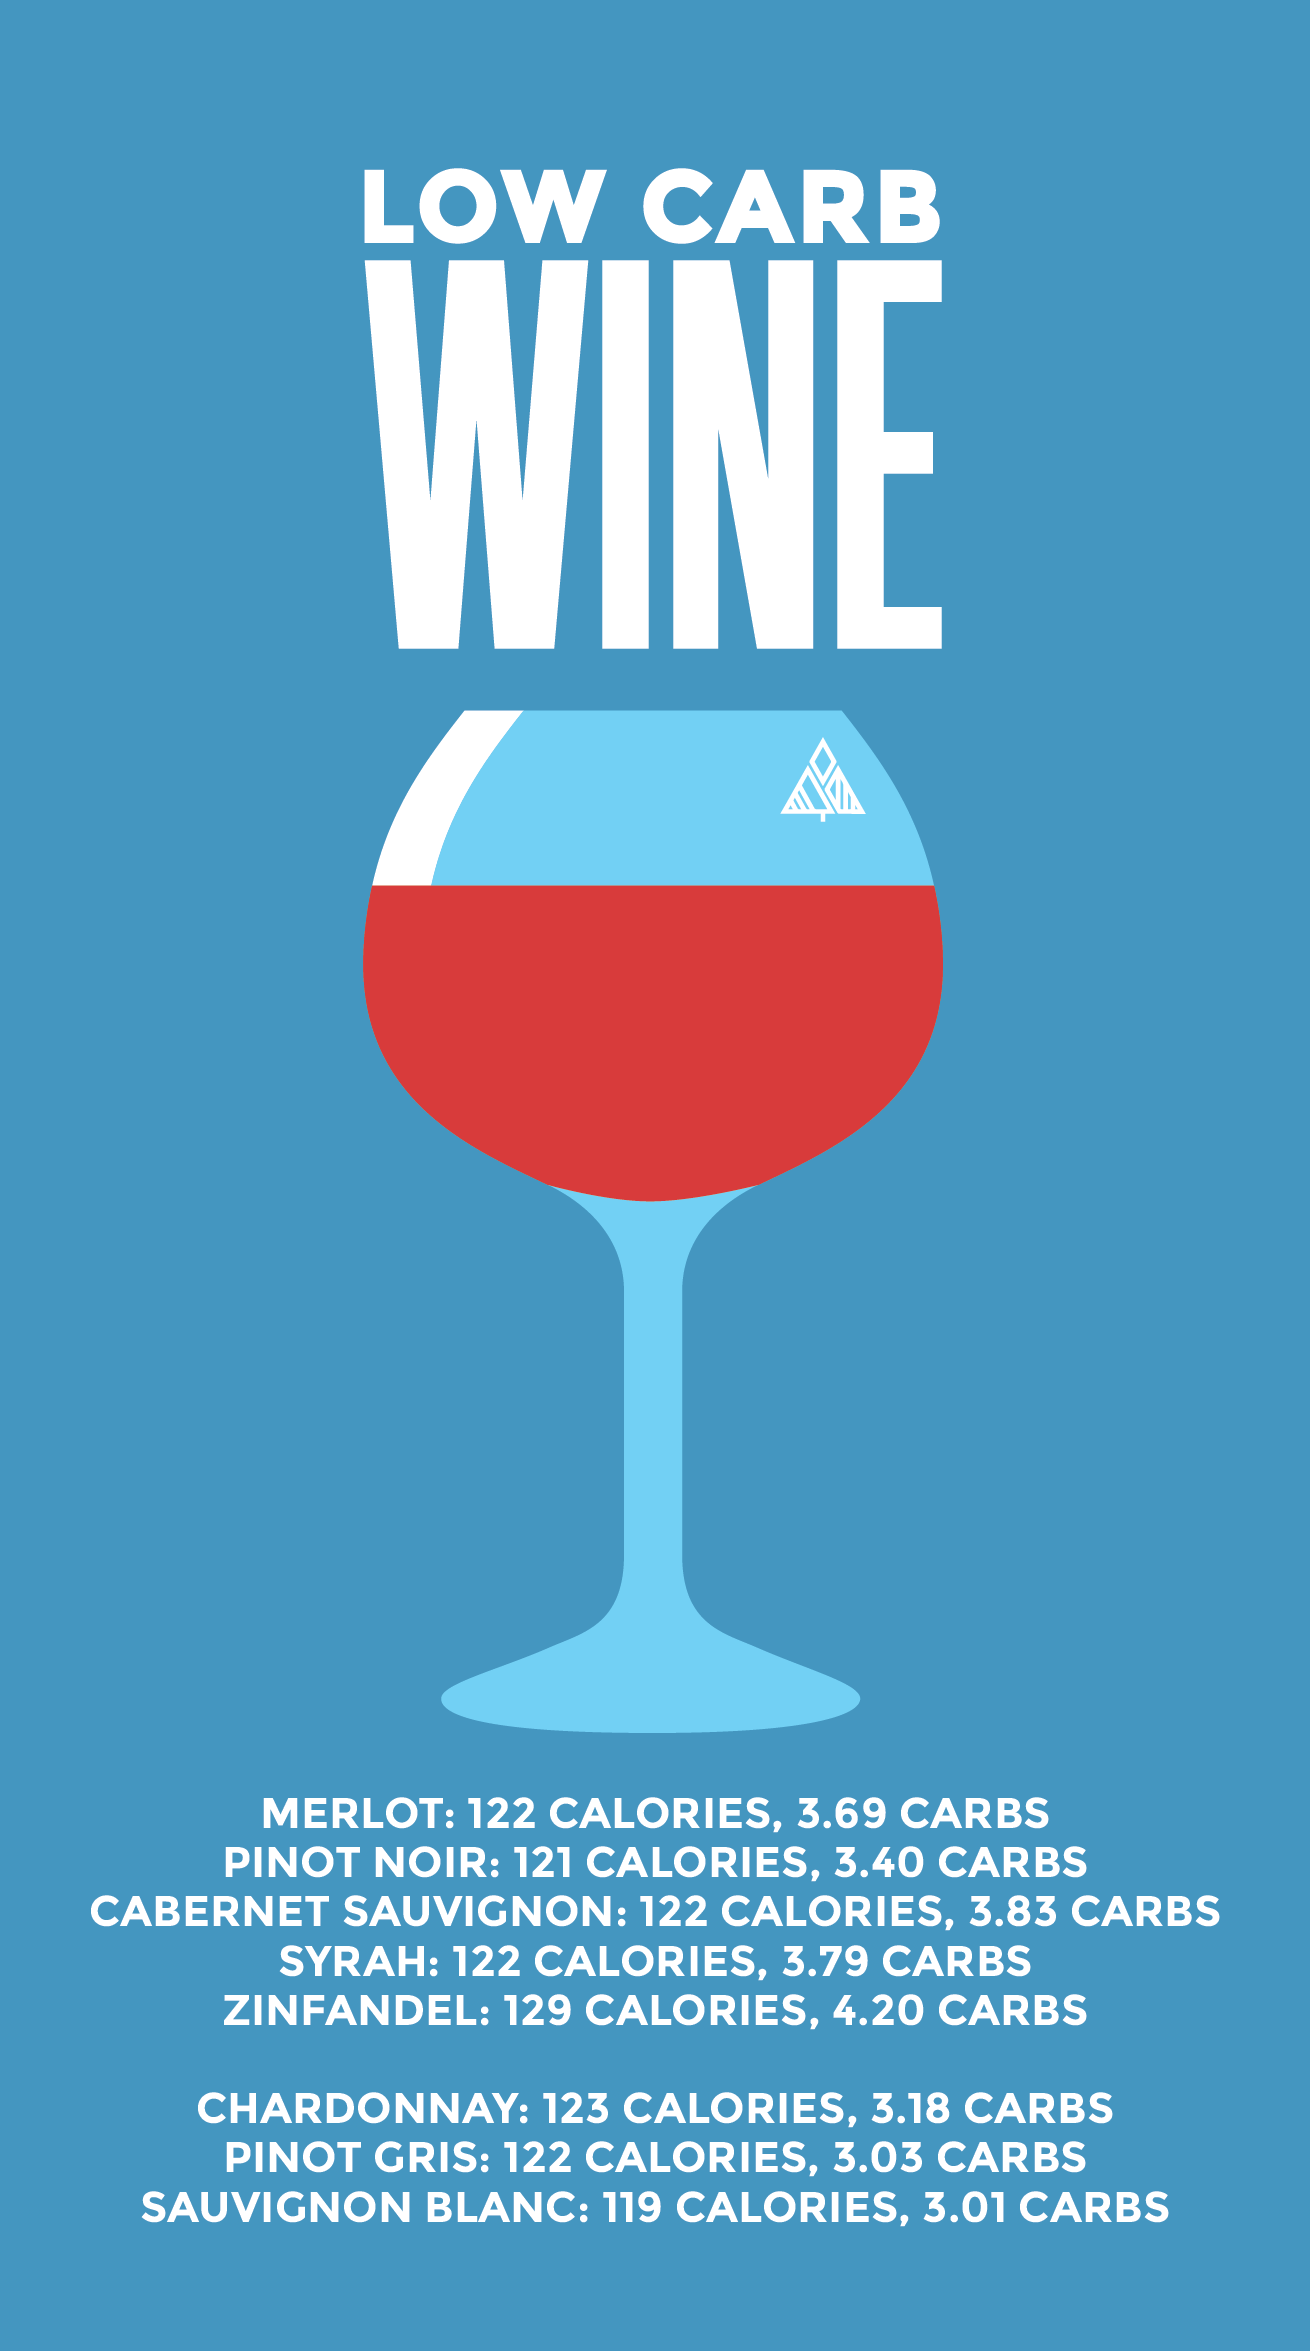 a list of low carb wines with the calorie and carb count